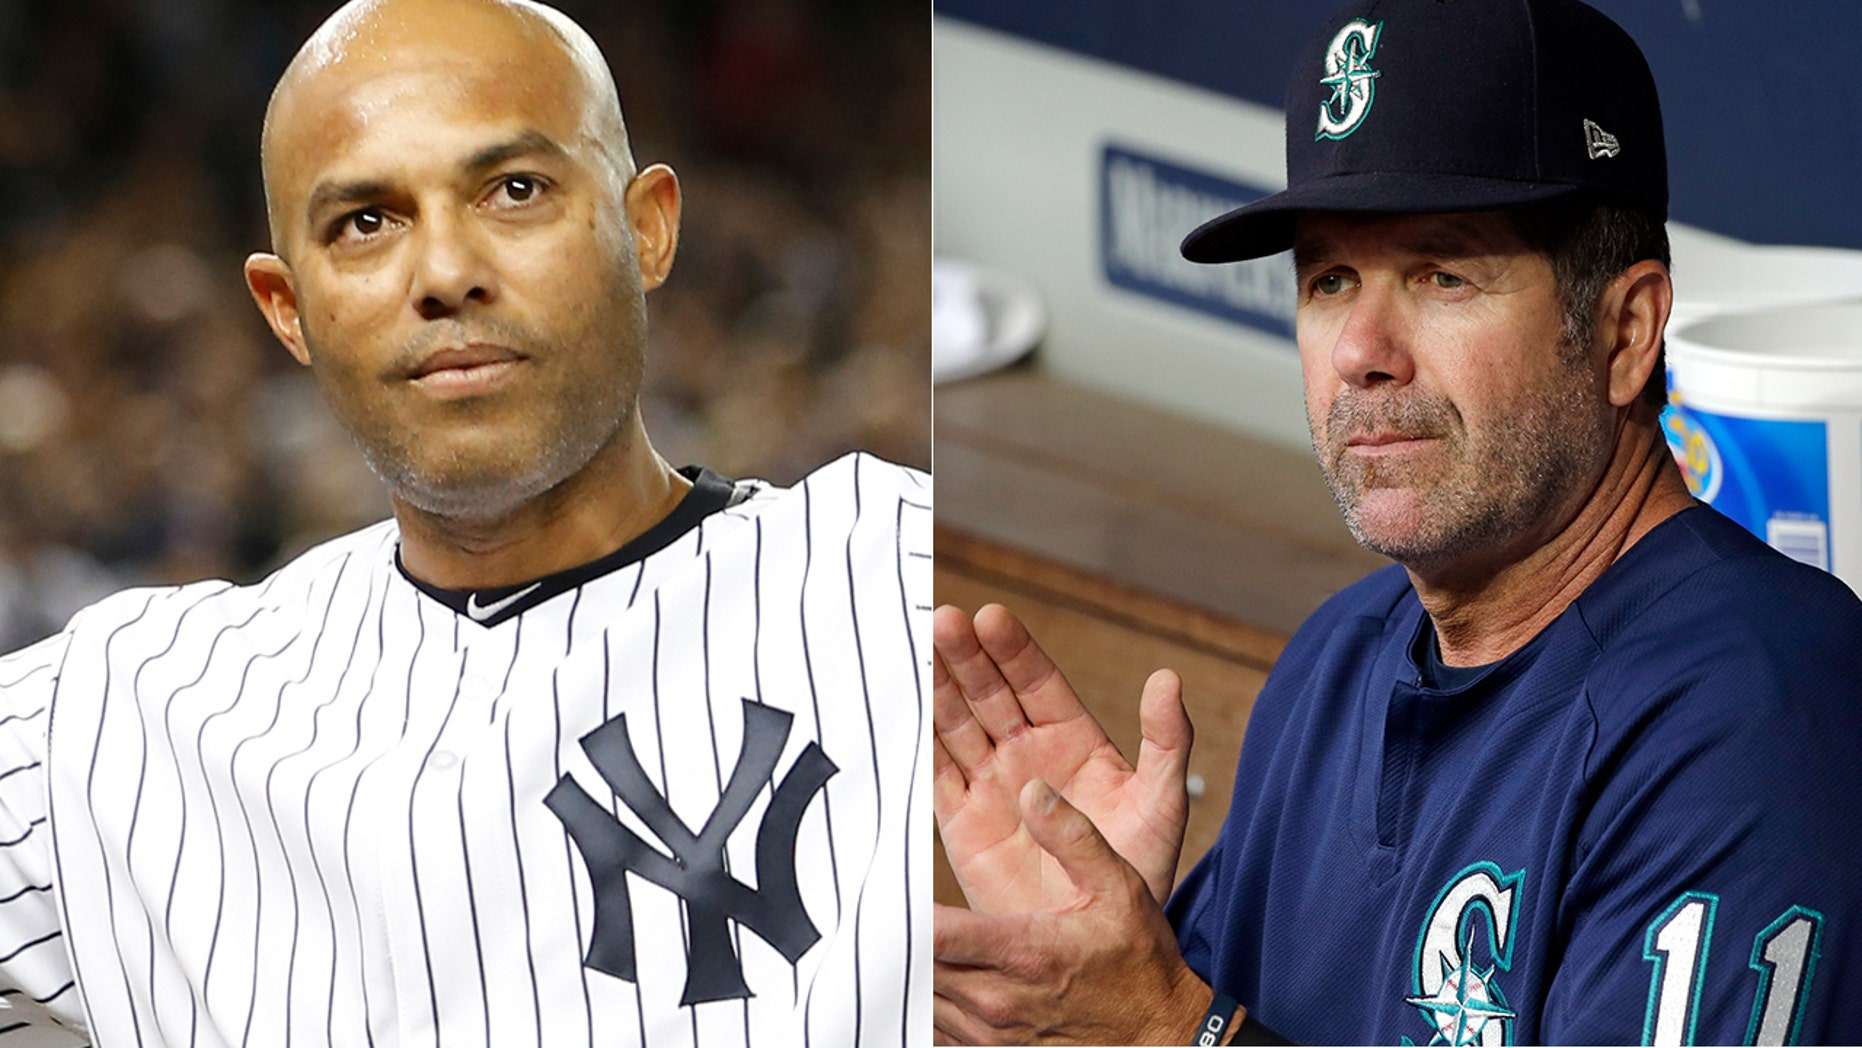 Mariano Rivera and Edgar Martinez both got the call to the hall.